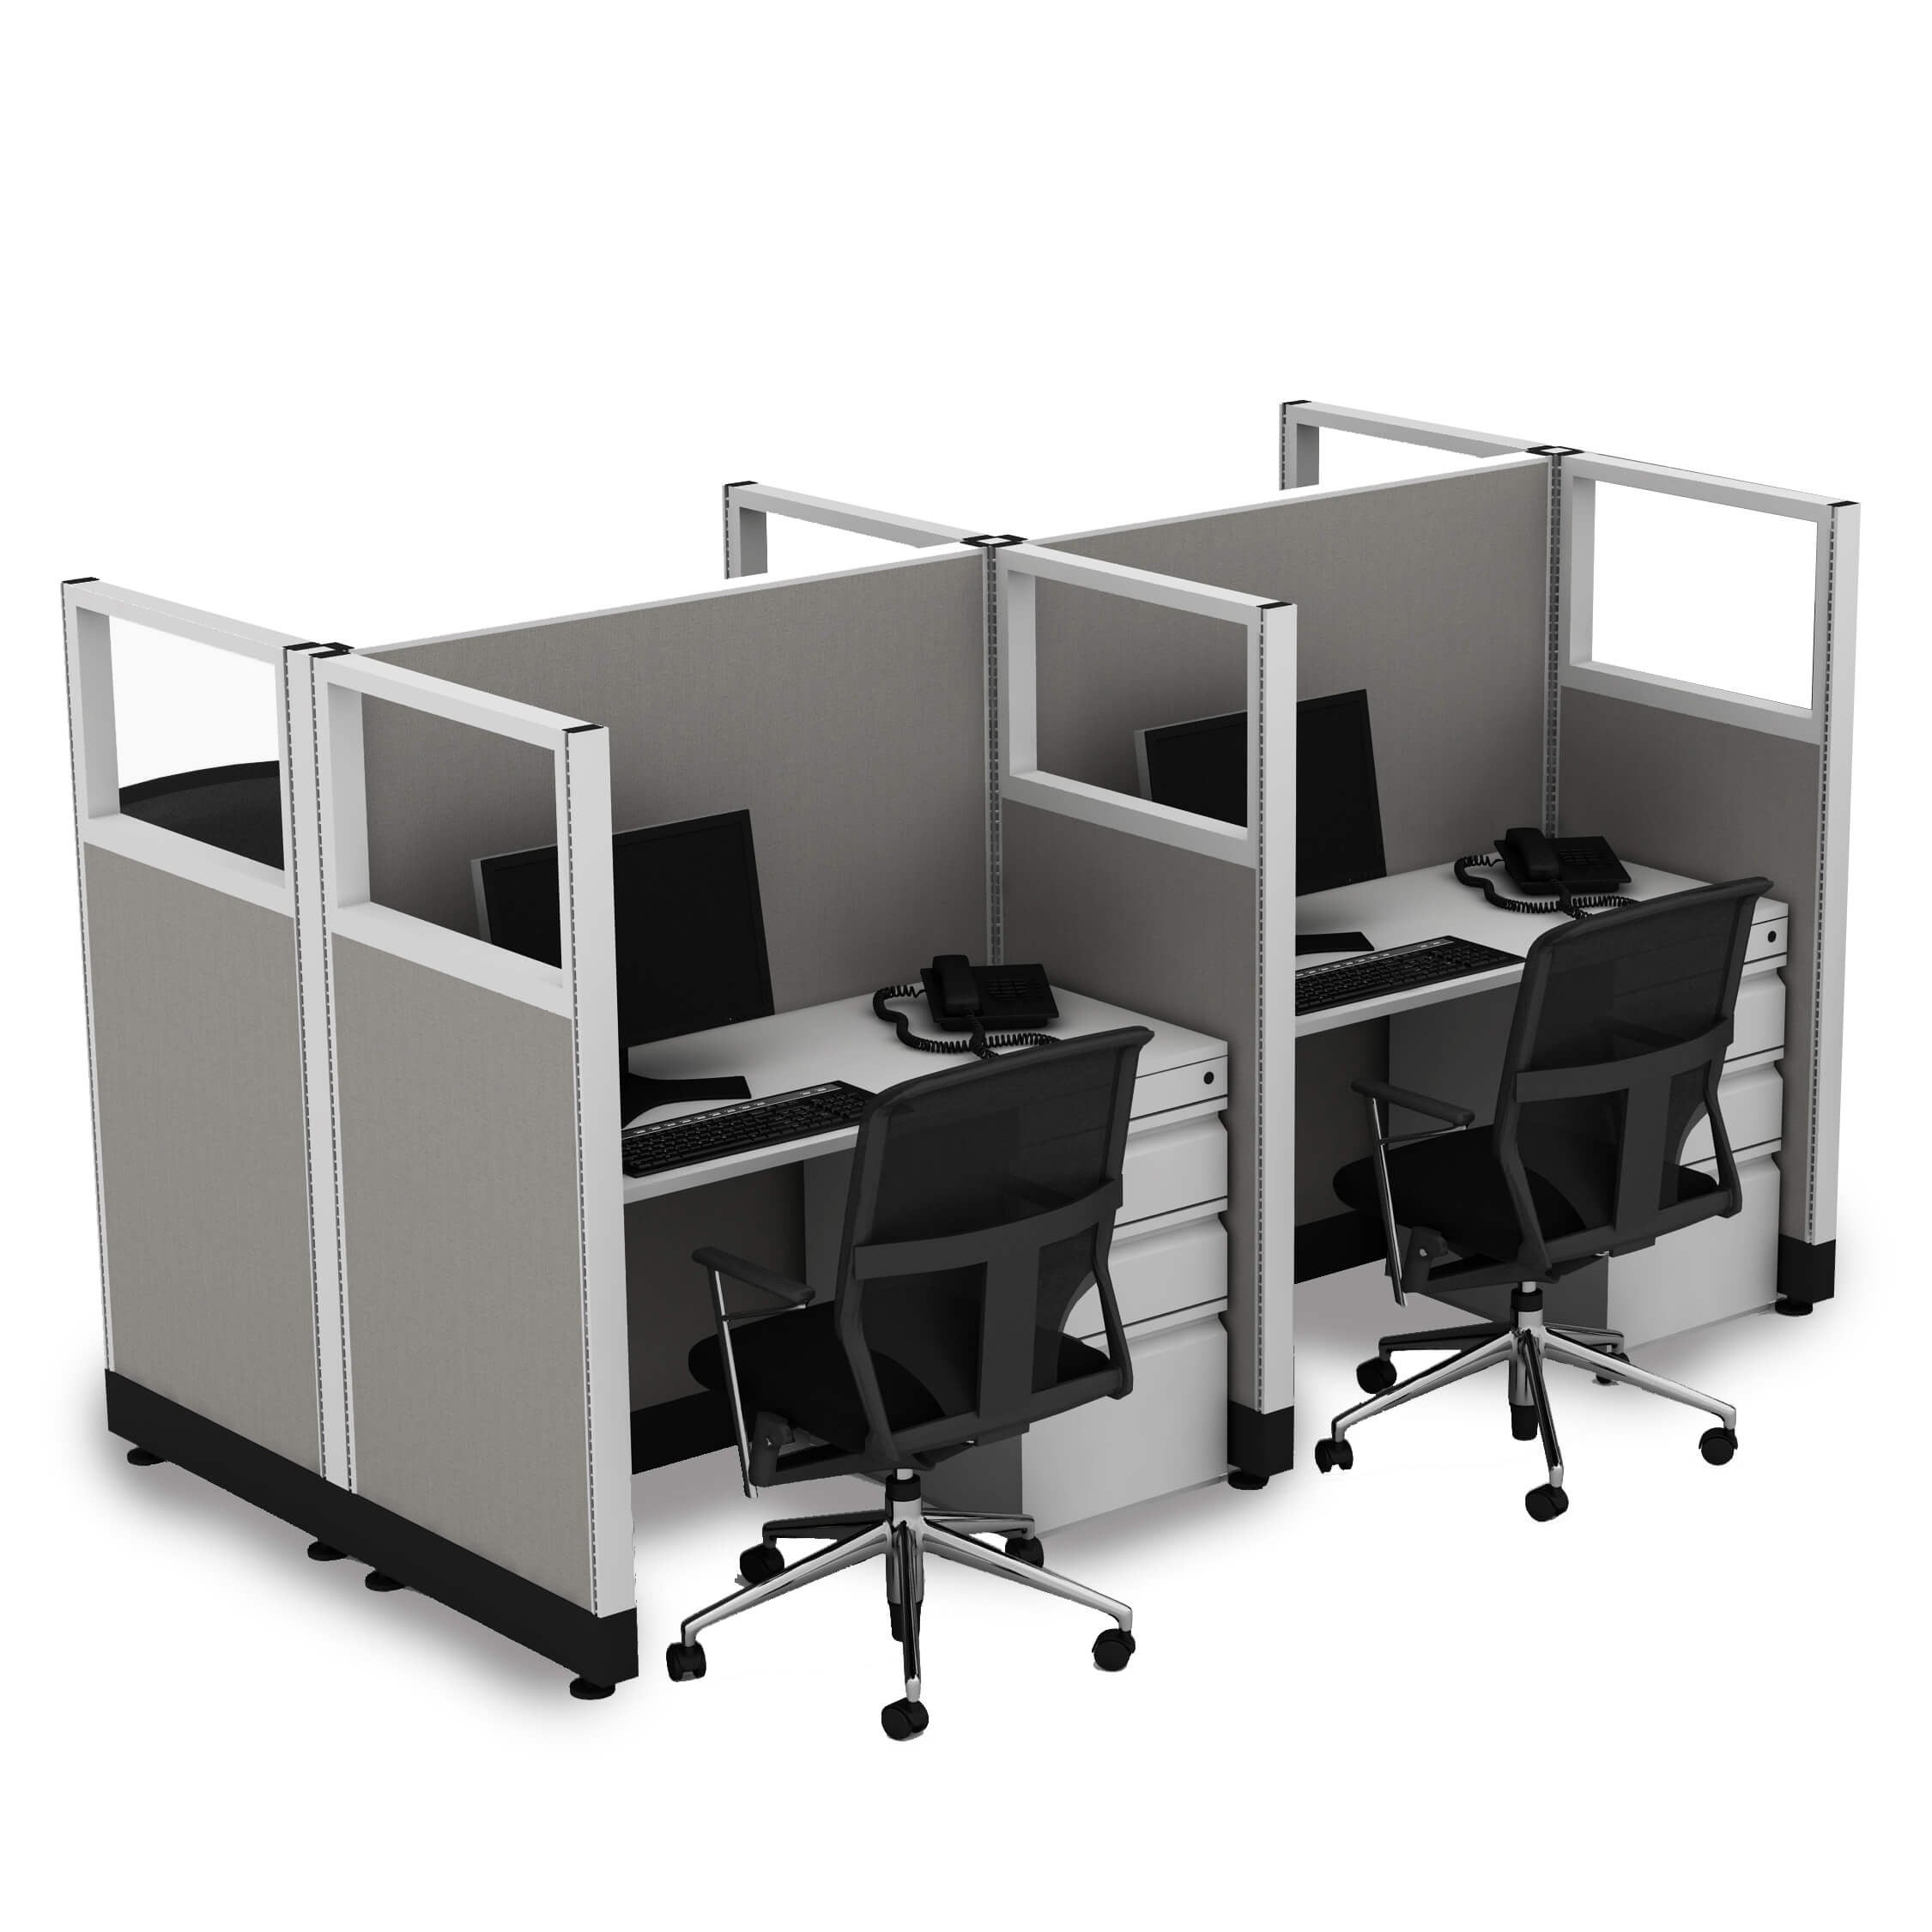 Cubicle Workstations 53H 4pack Cluster Powered (2x3 - Espresso Desk Silver Paint - Assembled)